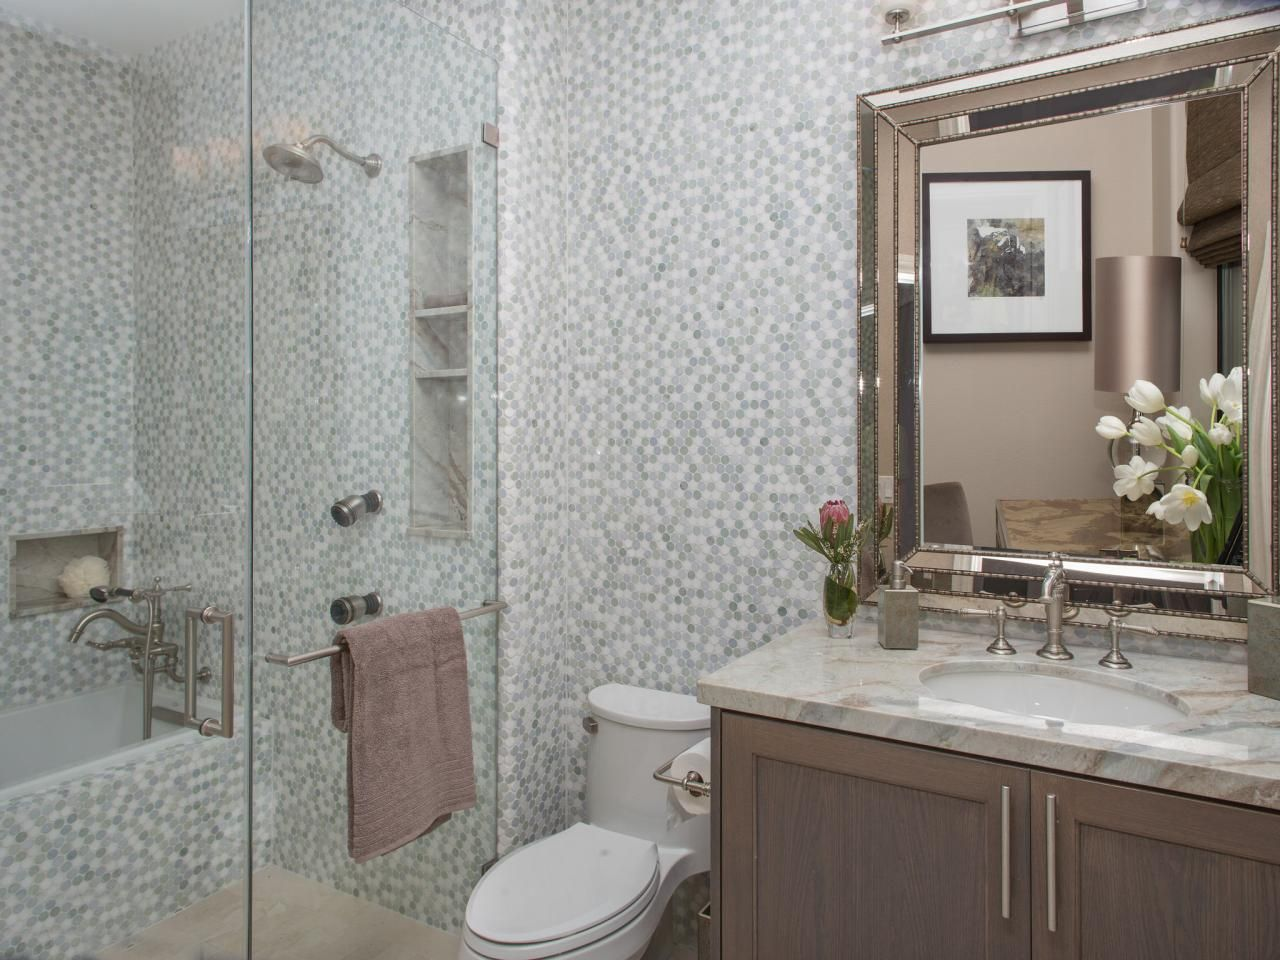 Before And After The Property Brothers Las Vegas Home Small Bathroom Makeover Small Bathroom Renovations Budget Bathroom Remodel